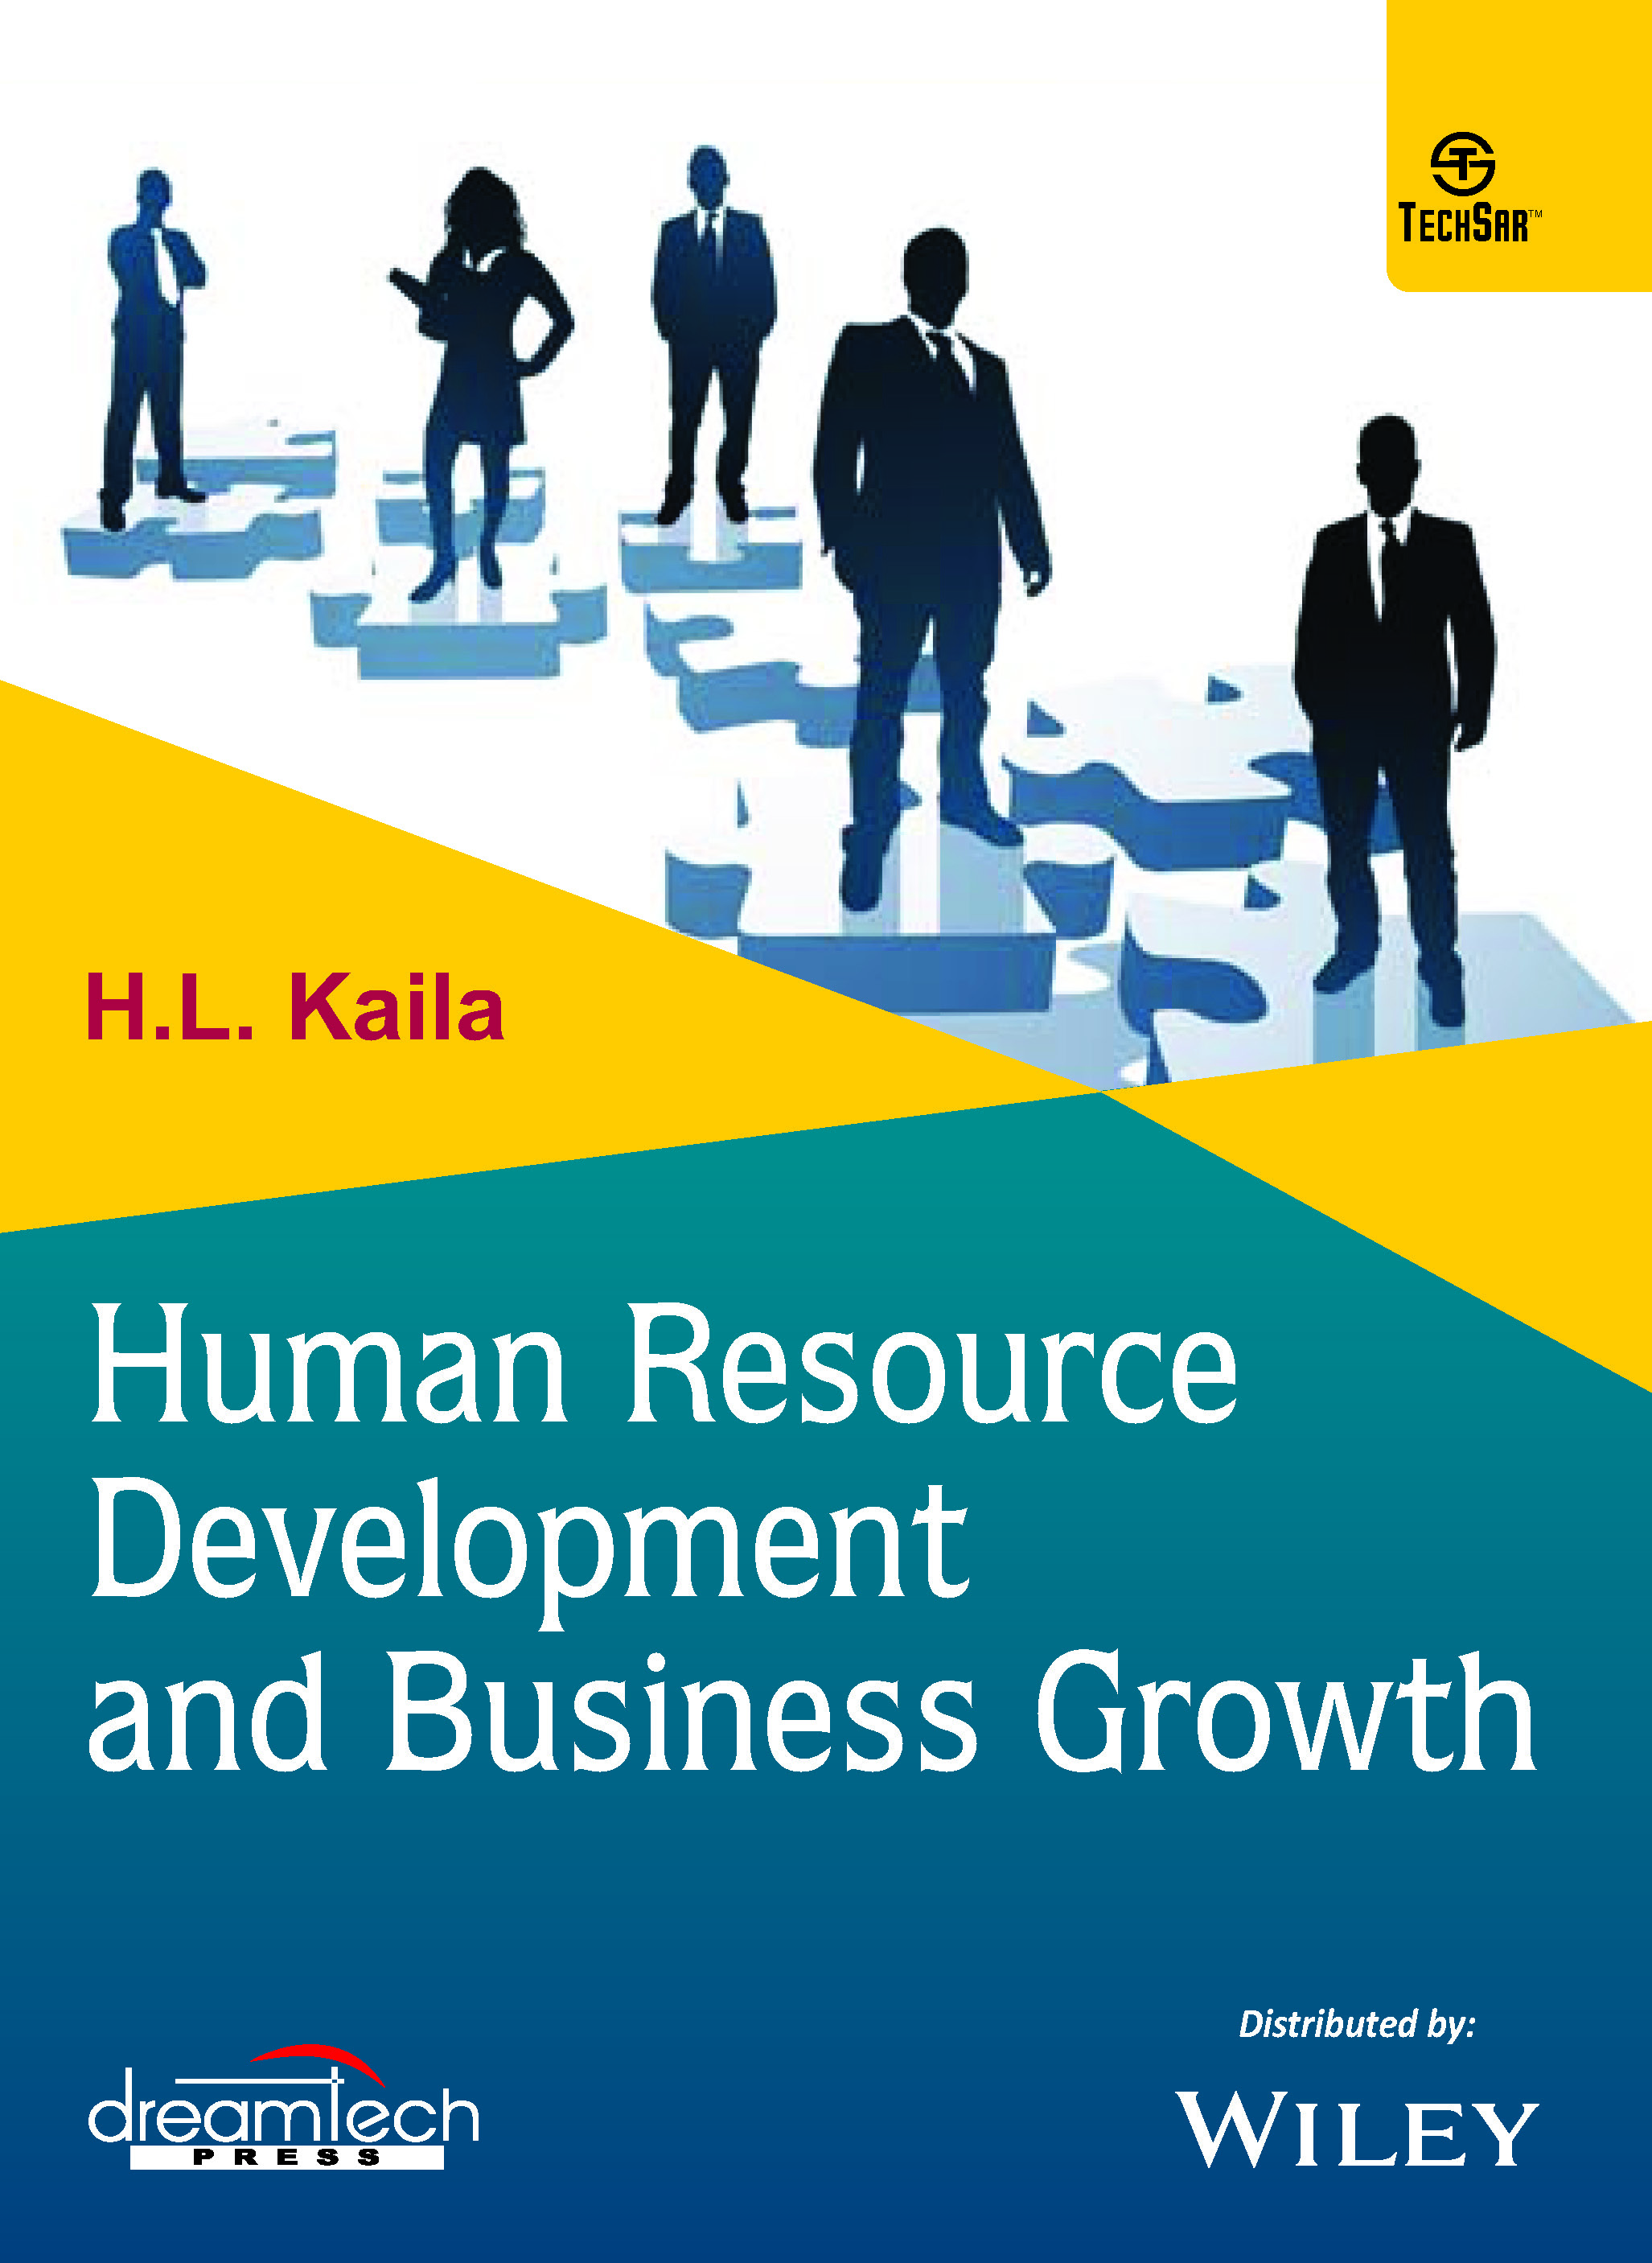 Human Resource Development and Business Growth